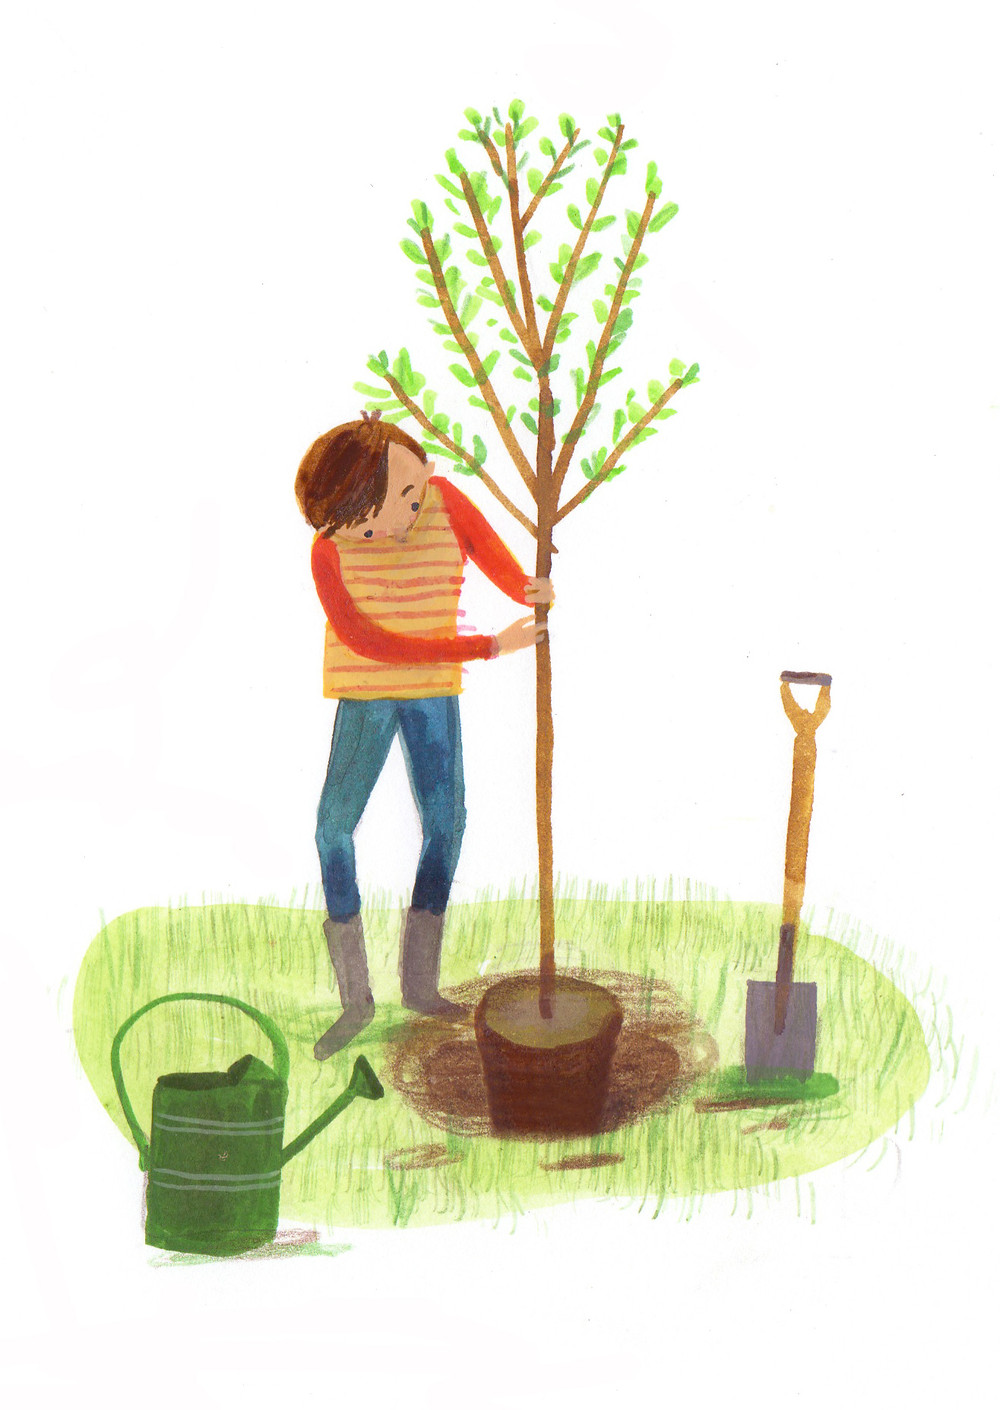 What's Alec doing now? Planting a tree!